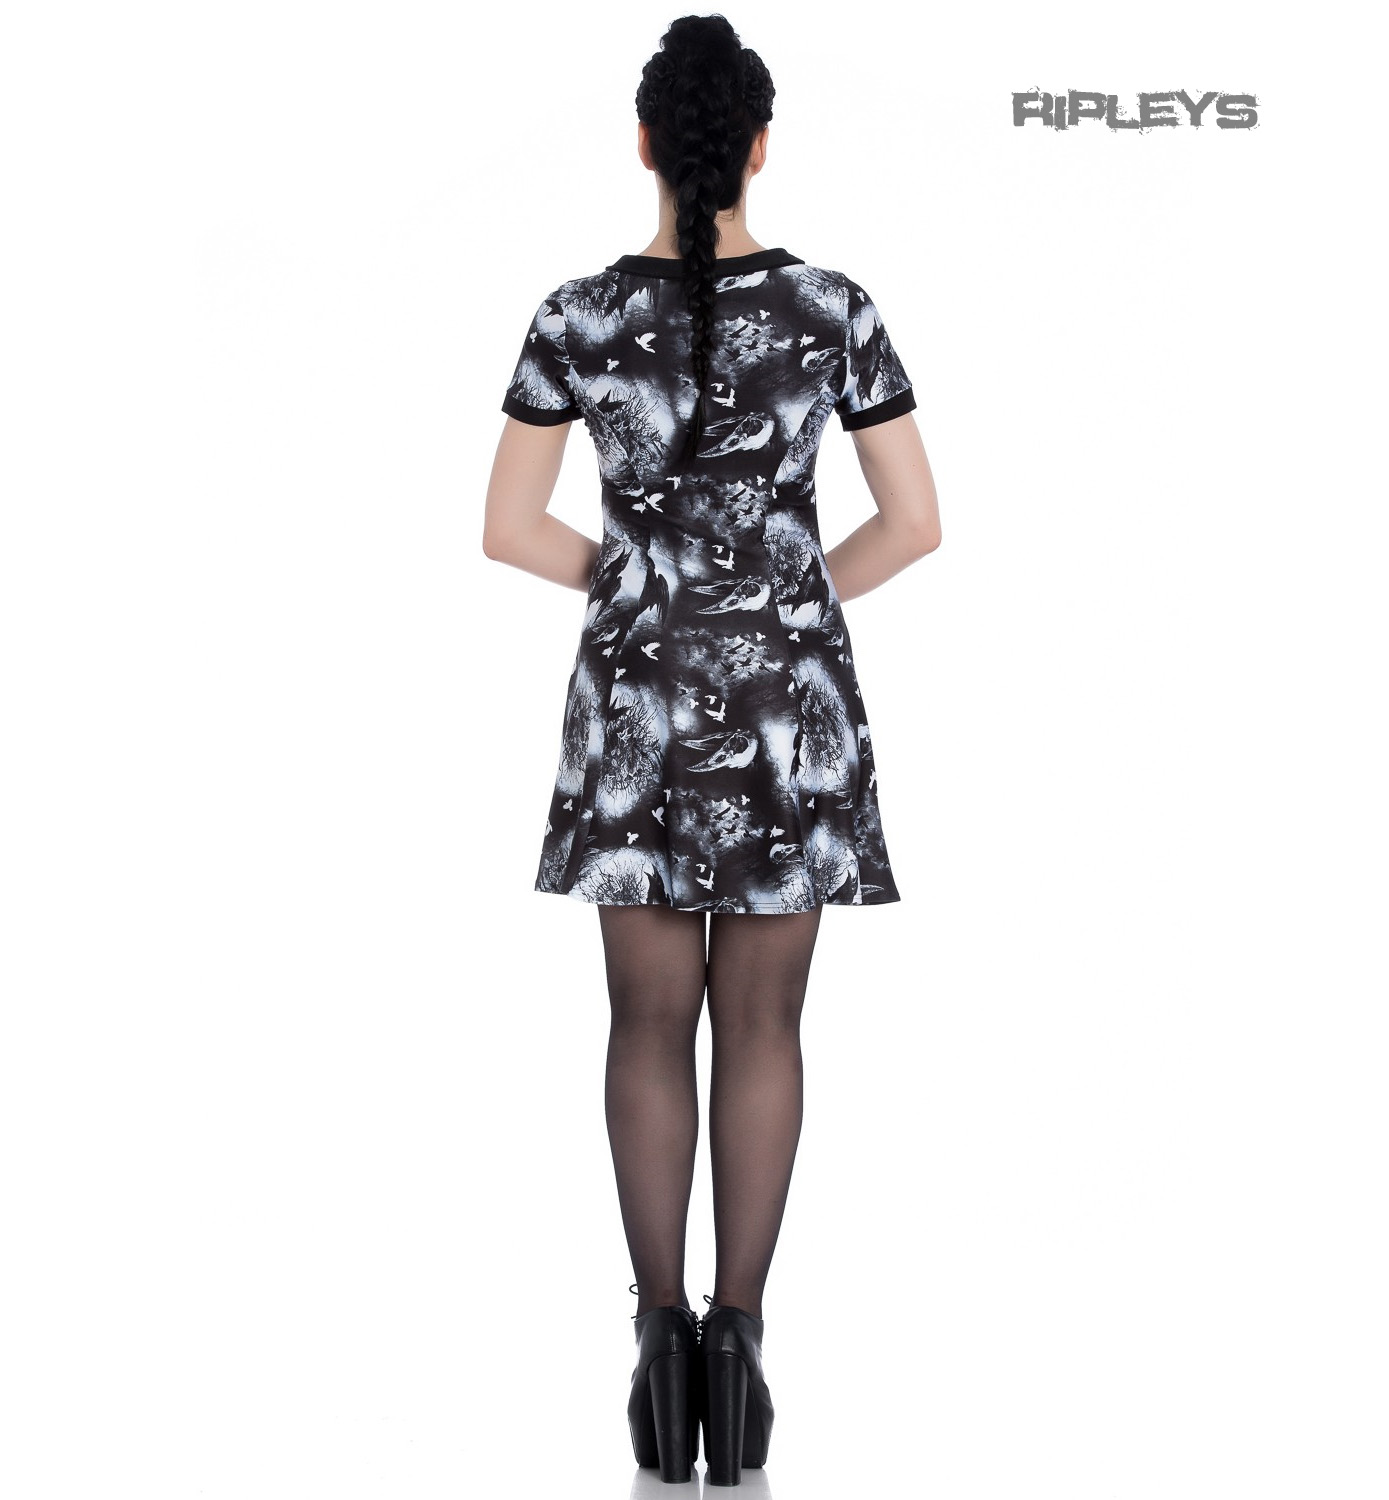 Hell-Bunny-Alternative-Goth-Punk-Black-Mini-Dress-CROWS-NEST-Witch-All-Sizes thumbnail 10